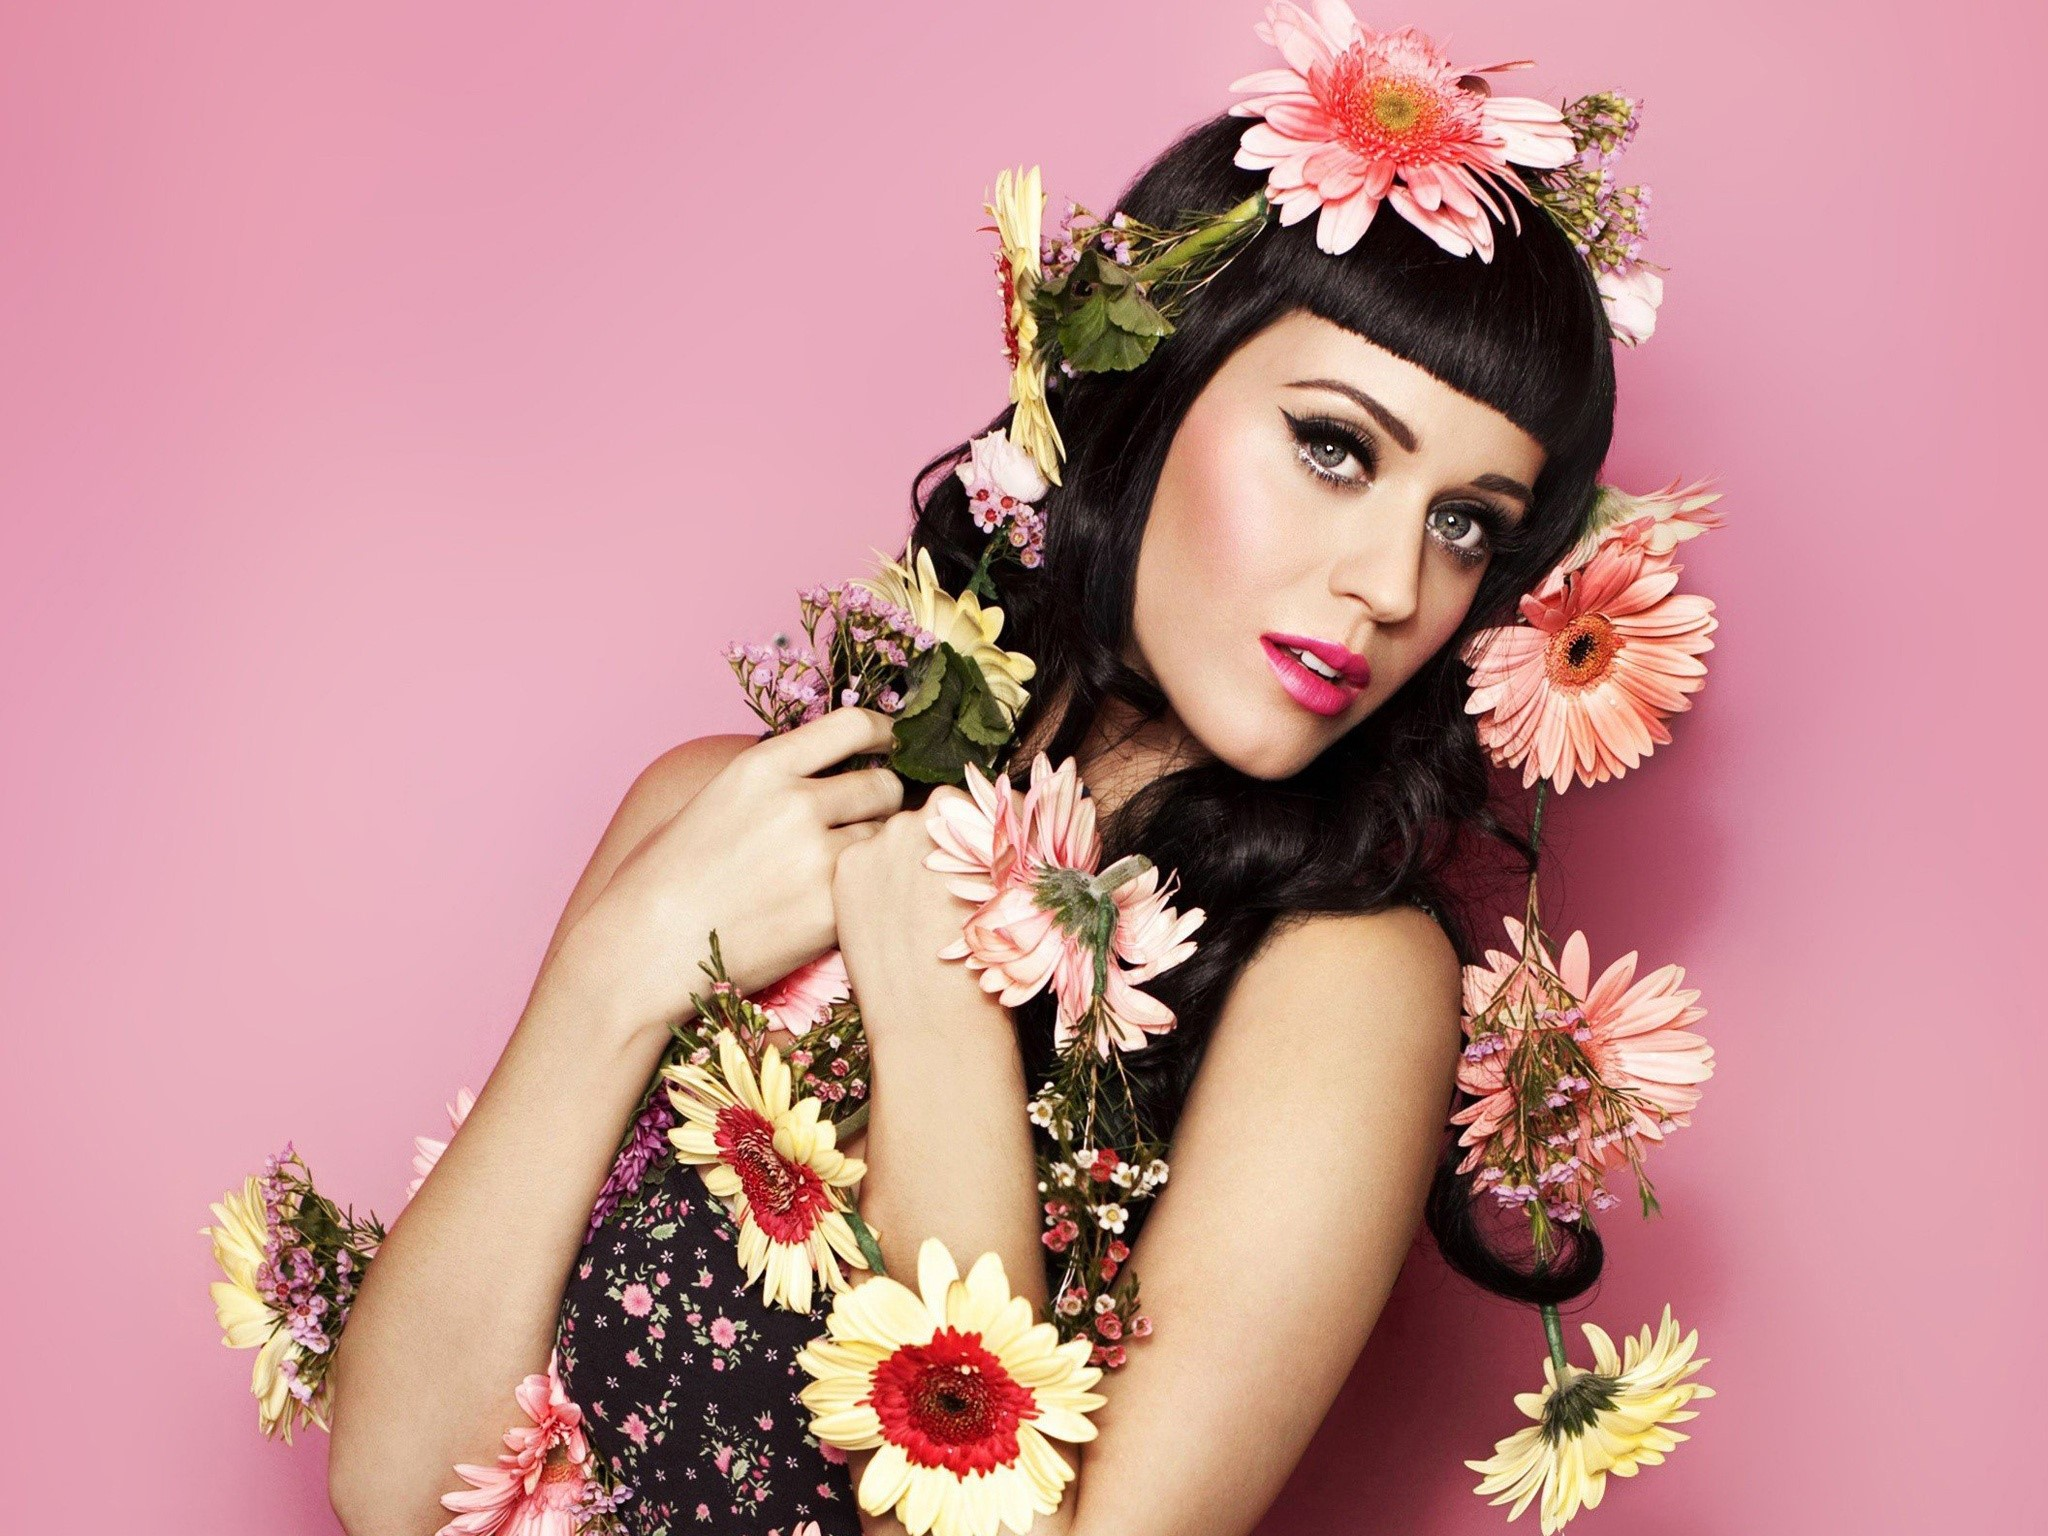 Wallpaper Katy Perry